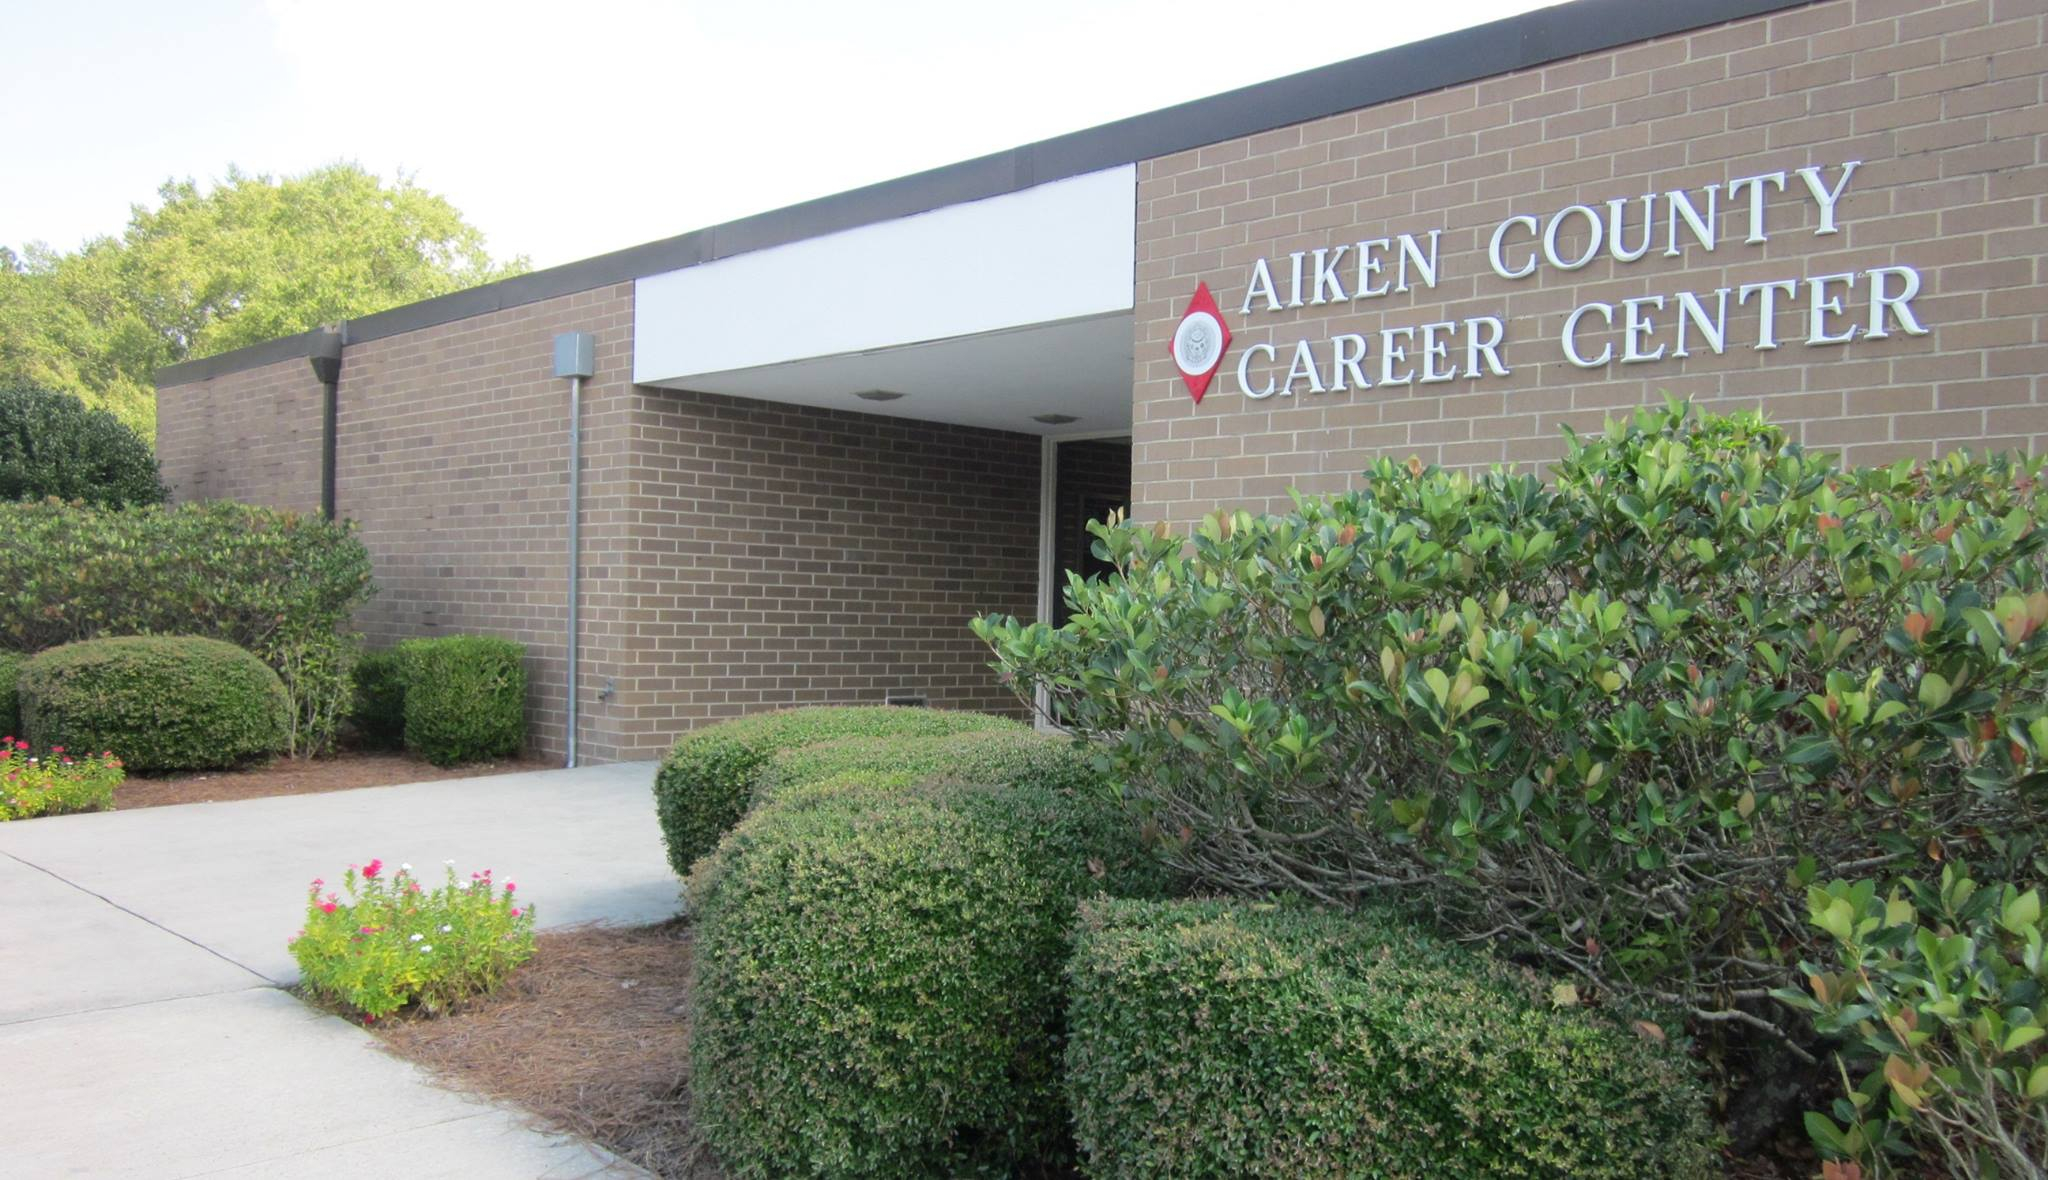 Career & Technology Center / Homepage For Aiken County Scholl Calenda